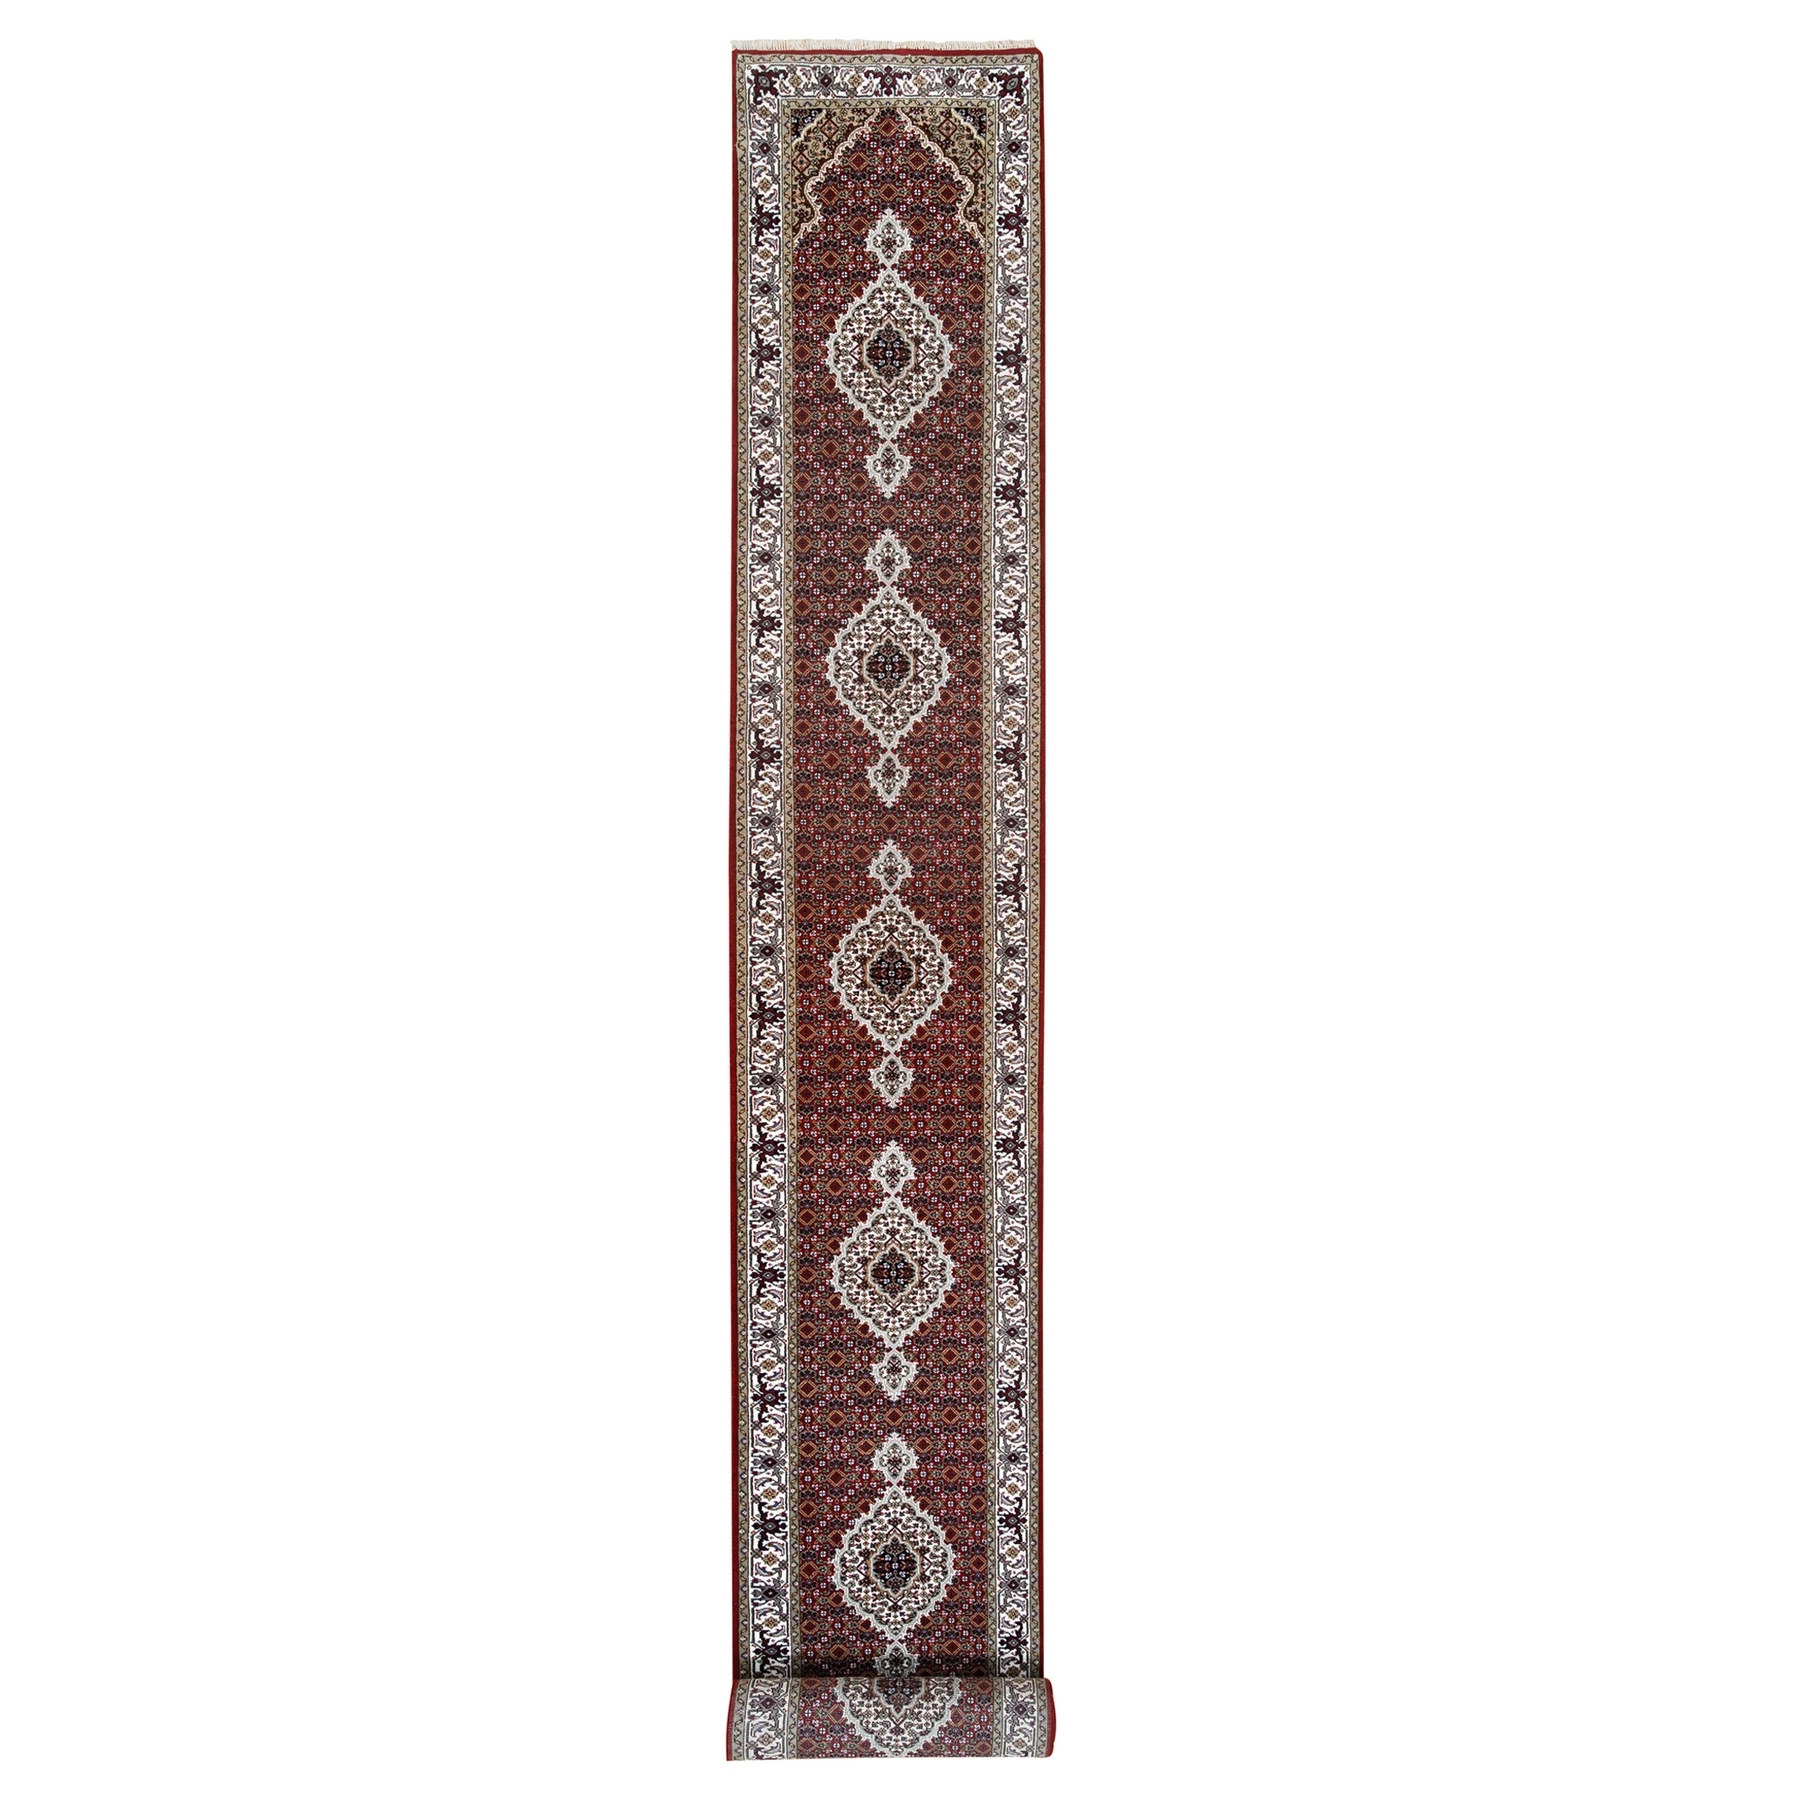 Pirniakan Collection Hand Knotted Red Rug No: 1125016